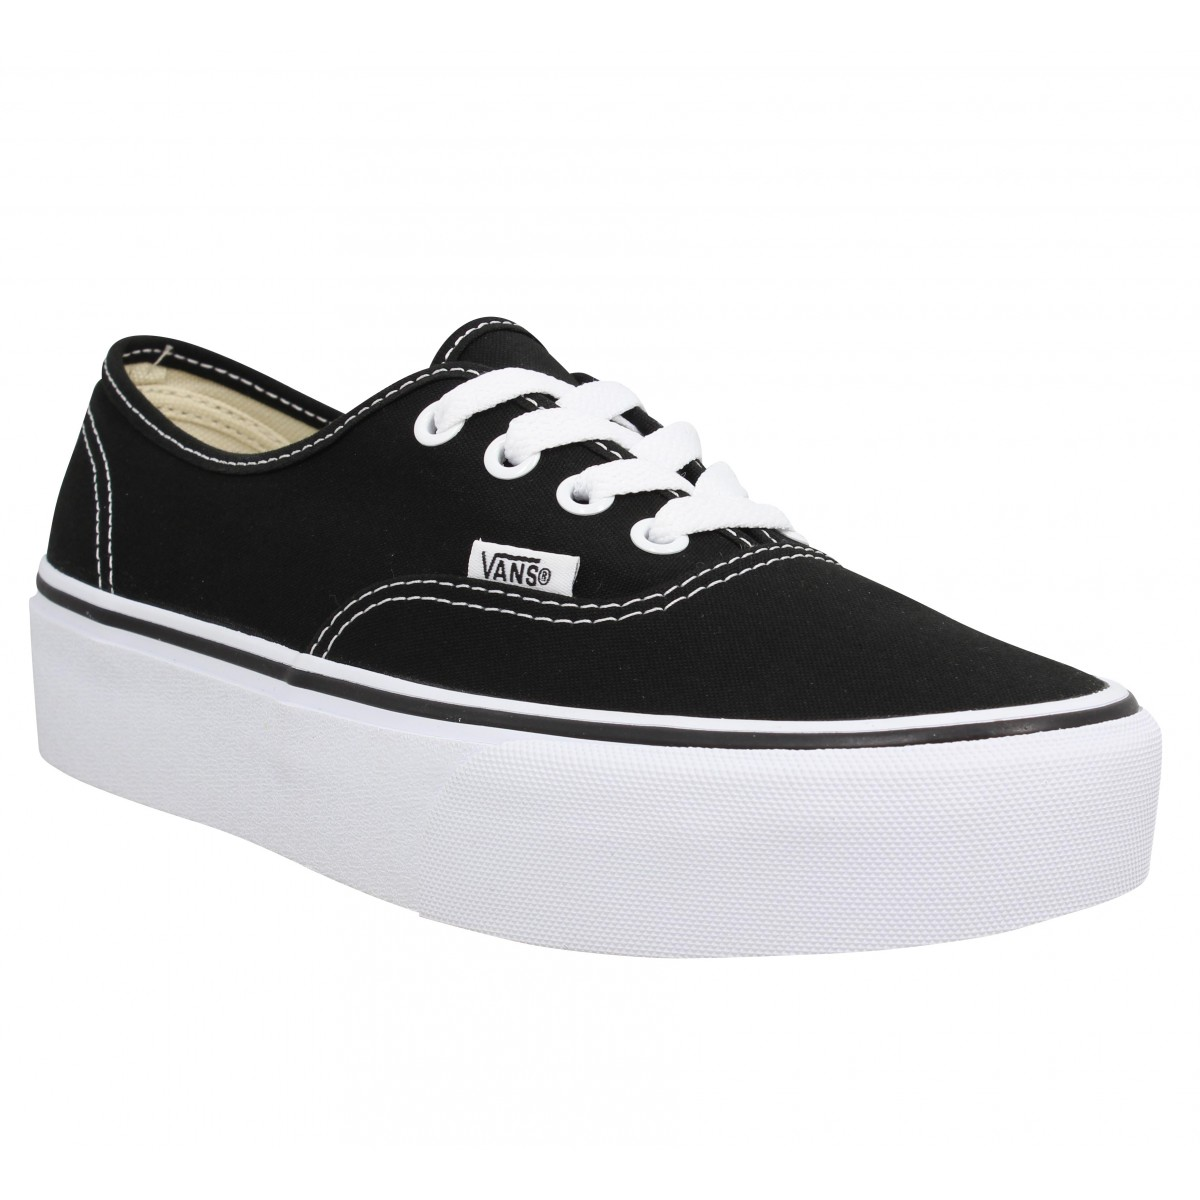 Baskets VANS Authentic Platform toile Femme Noir